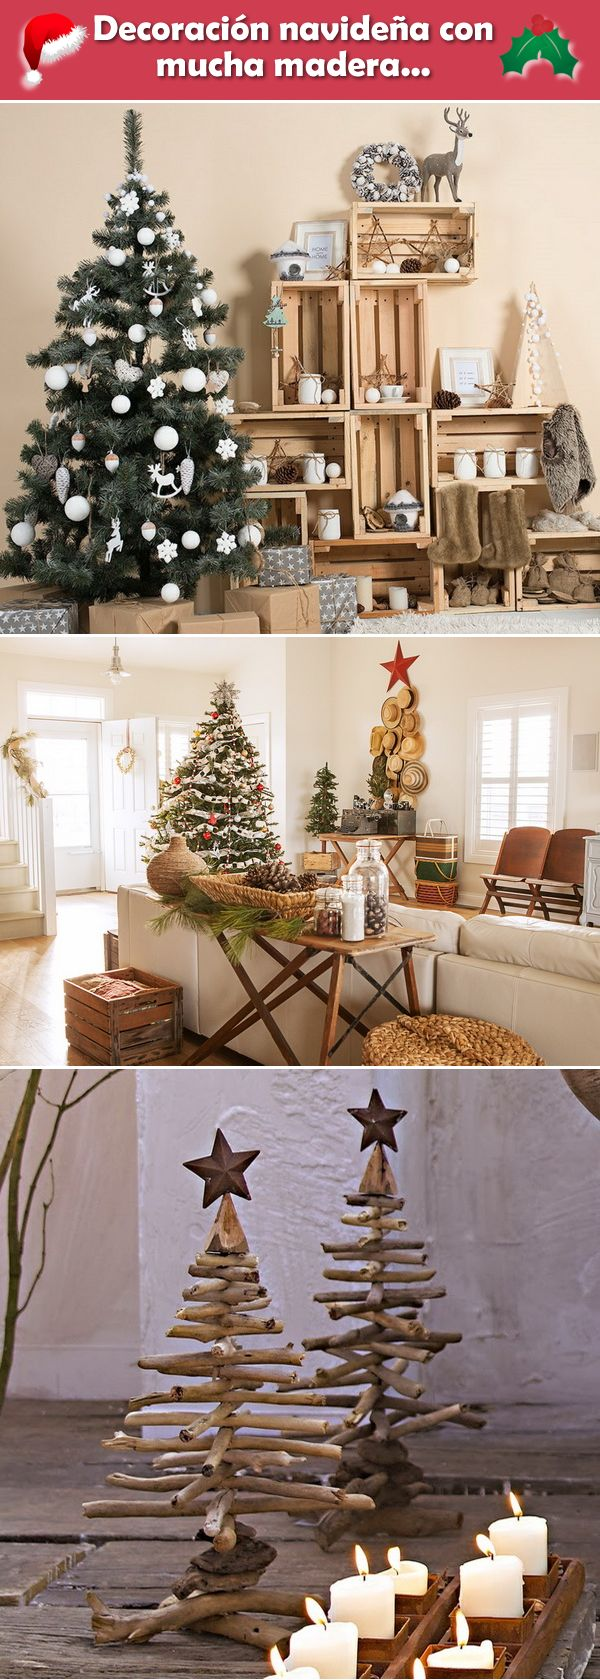 M s de 25 ideas nicas sobre navidad r stica en pinterest for Decoracion navidena rustica